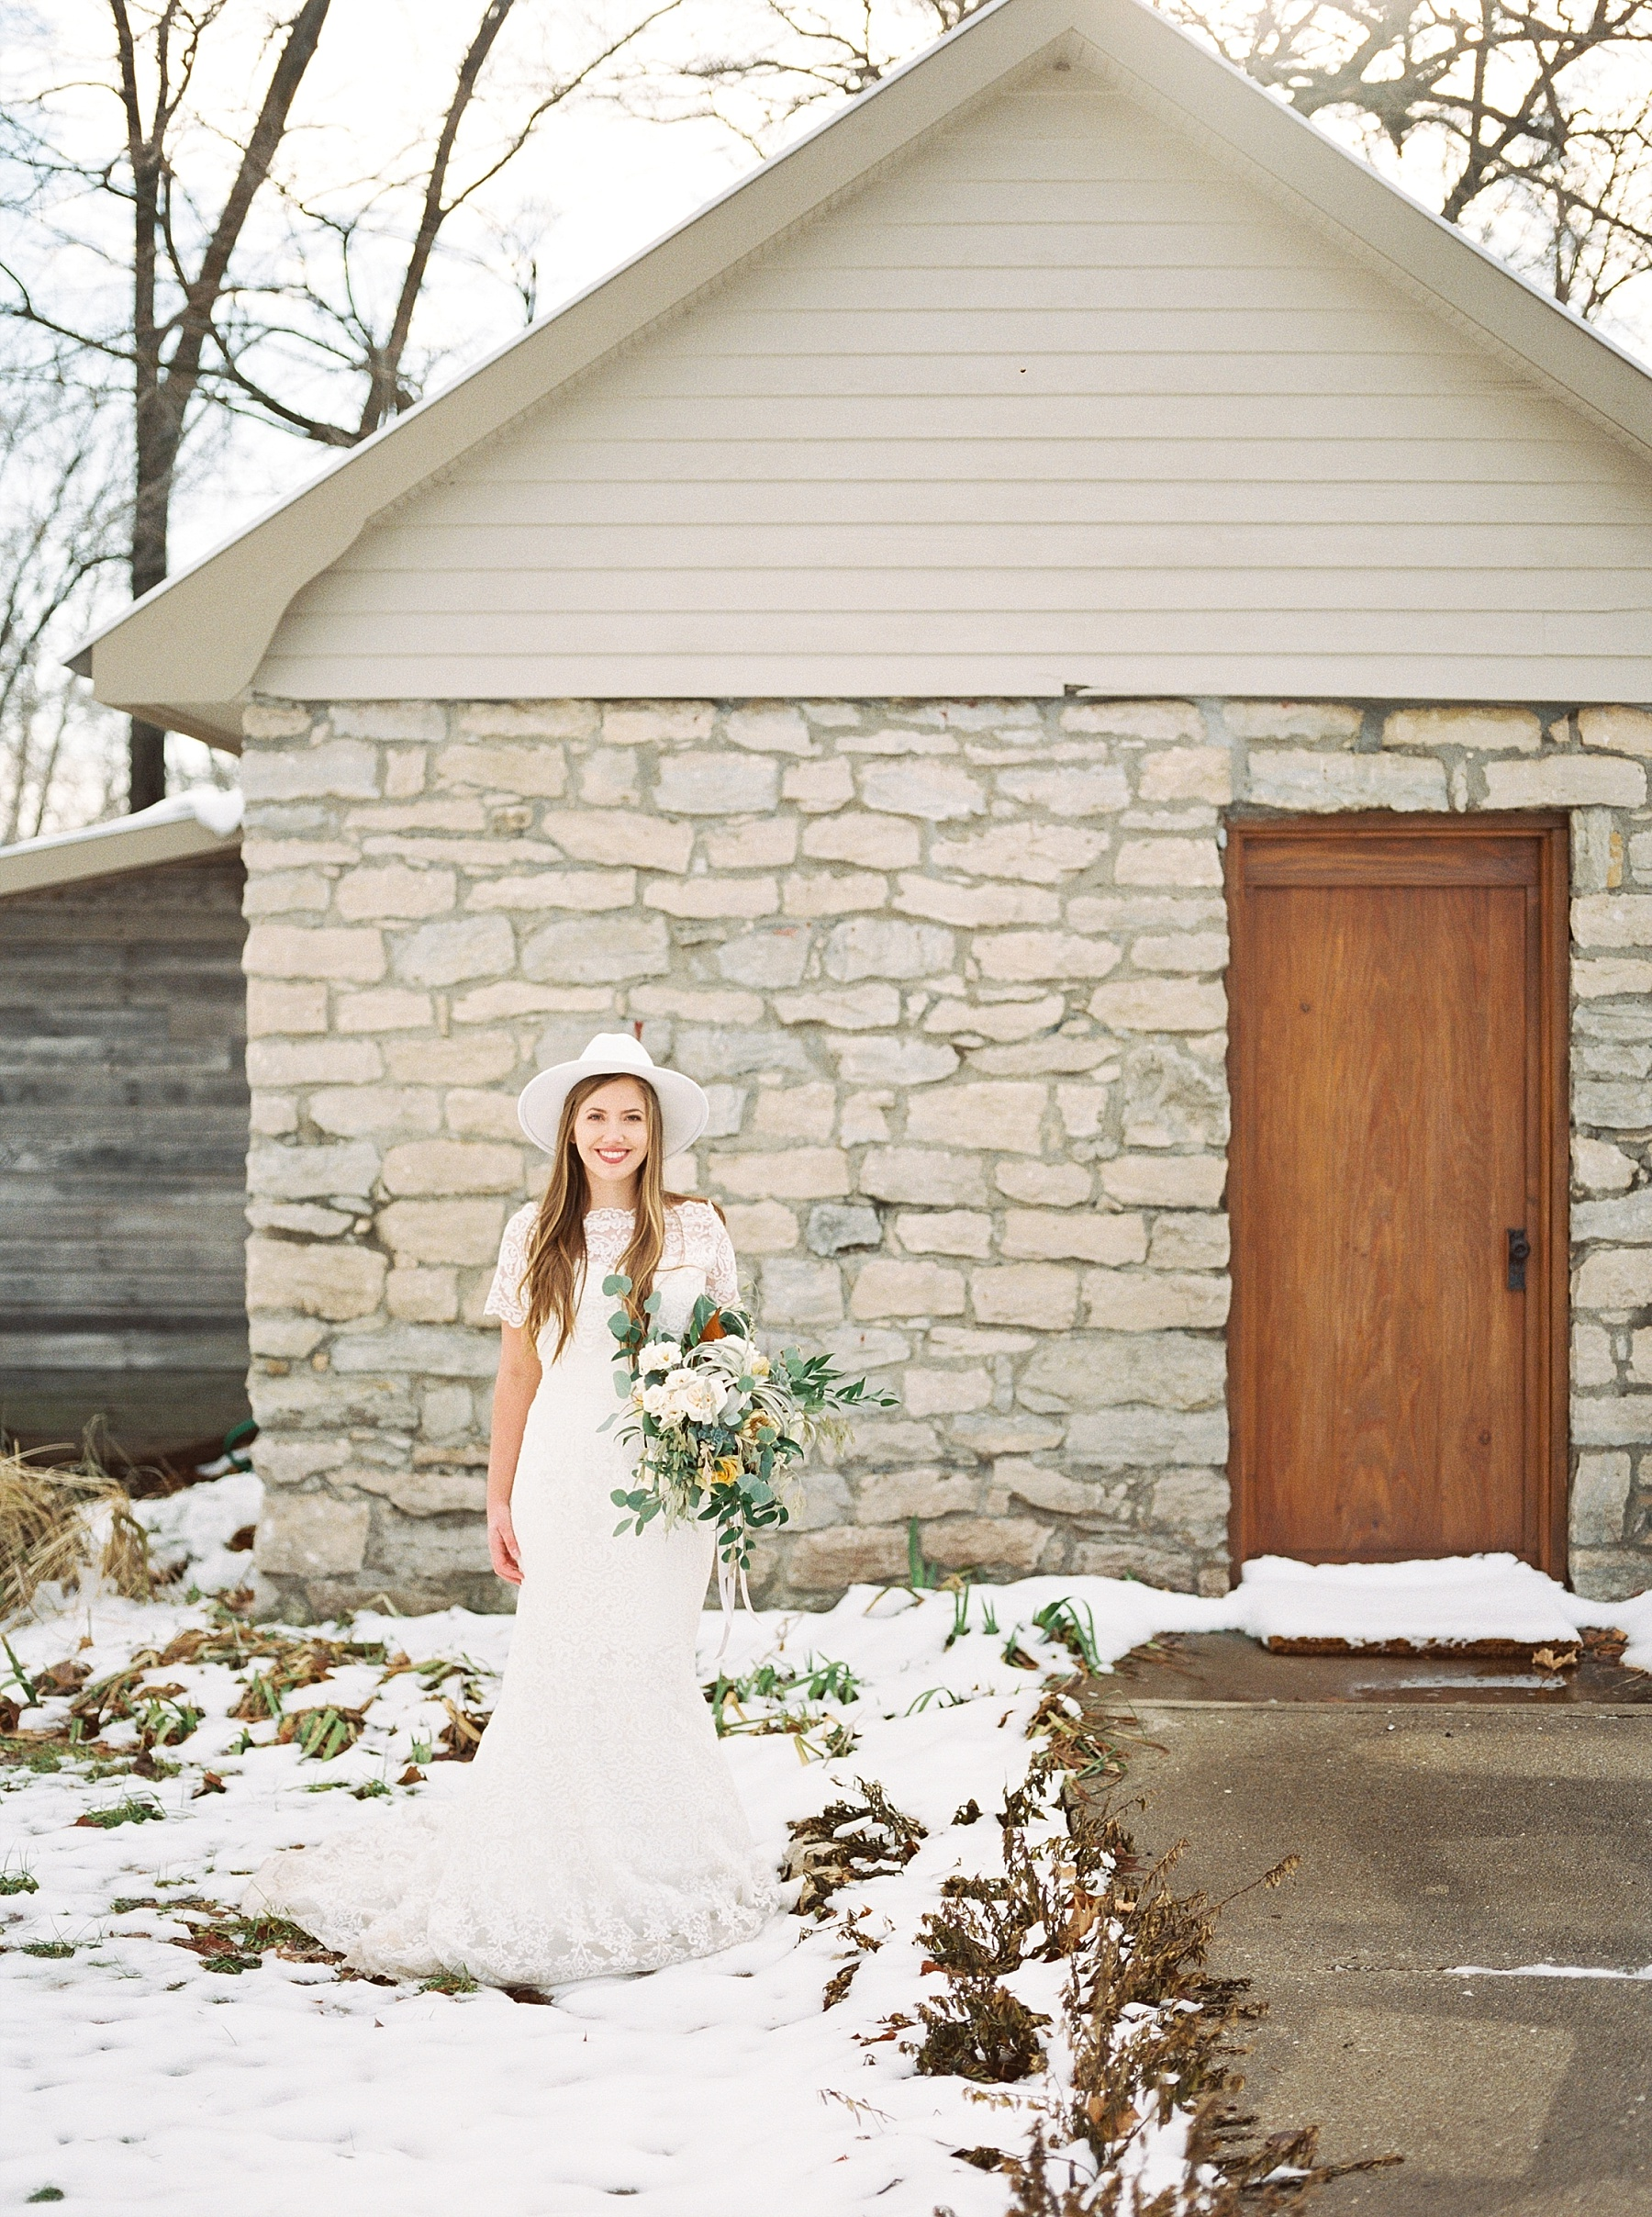 Snowy Winter Wedding at Wildcliff Events Lake With Earthy Jewel Tones and Organic Refined Style by Kelsi Kliethermes Photography Kansas City Missouri Wedding Photographer_0128.jpg